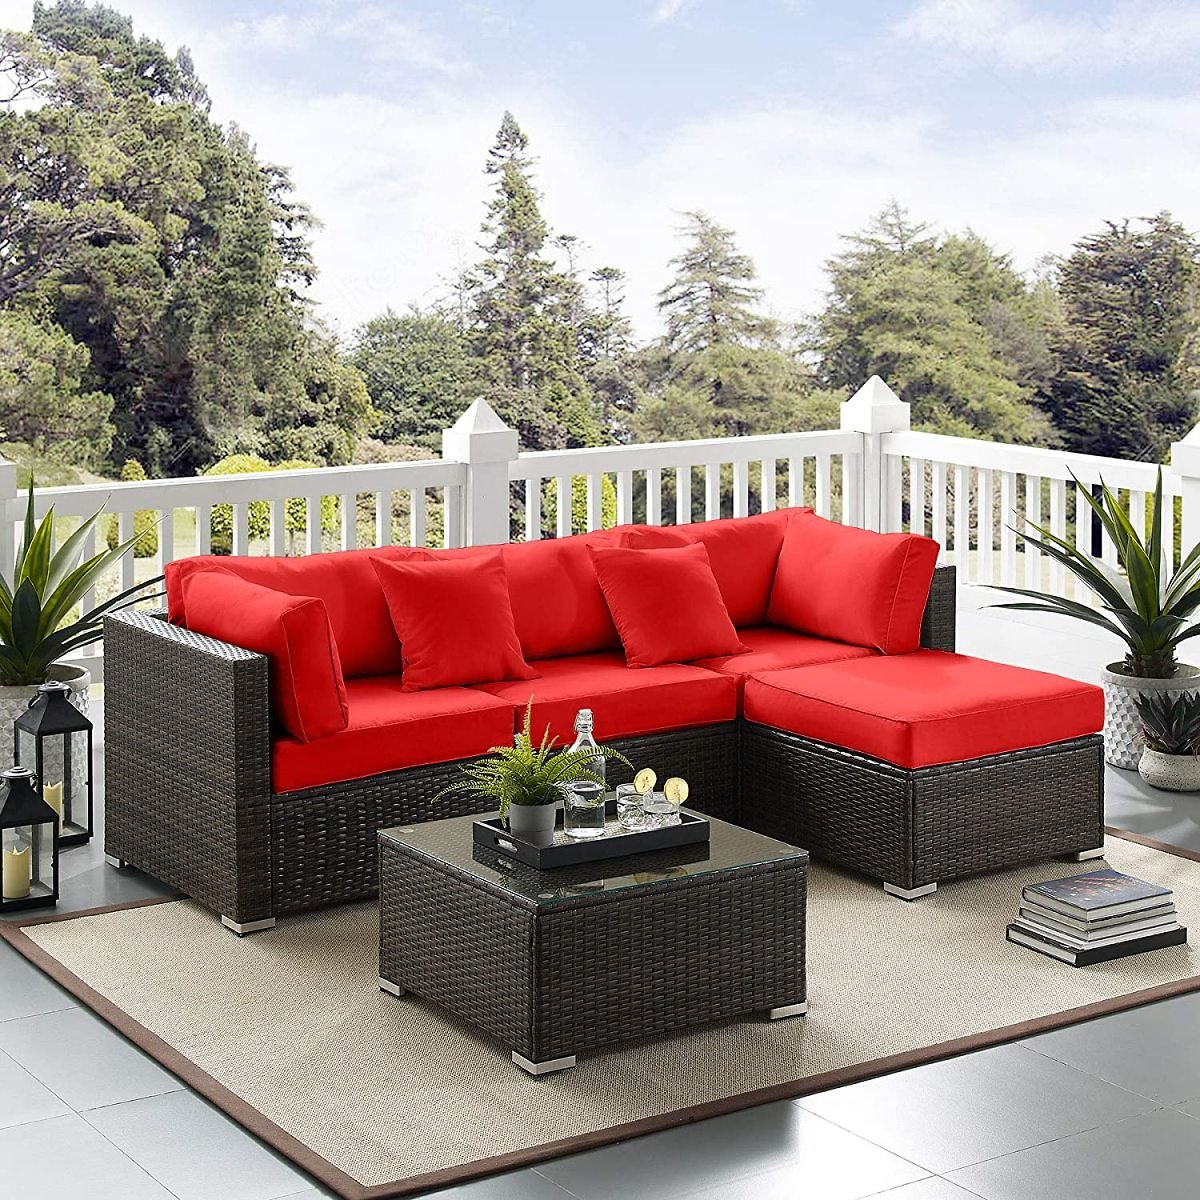 Tribesigns 5 PCS Outdoor Furniture Sectional Sofa Set, Large Wicker Patio Furniture Conversation Set Rattan Couch with Waterproo